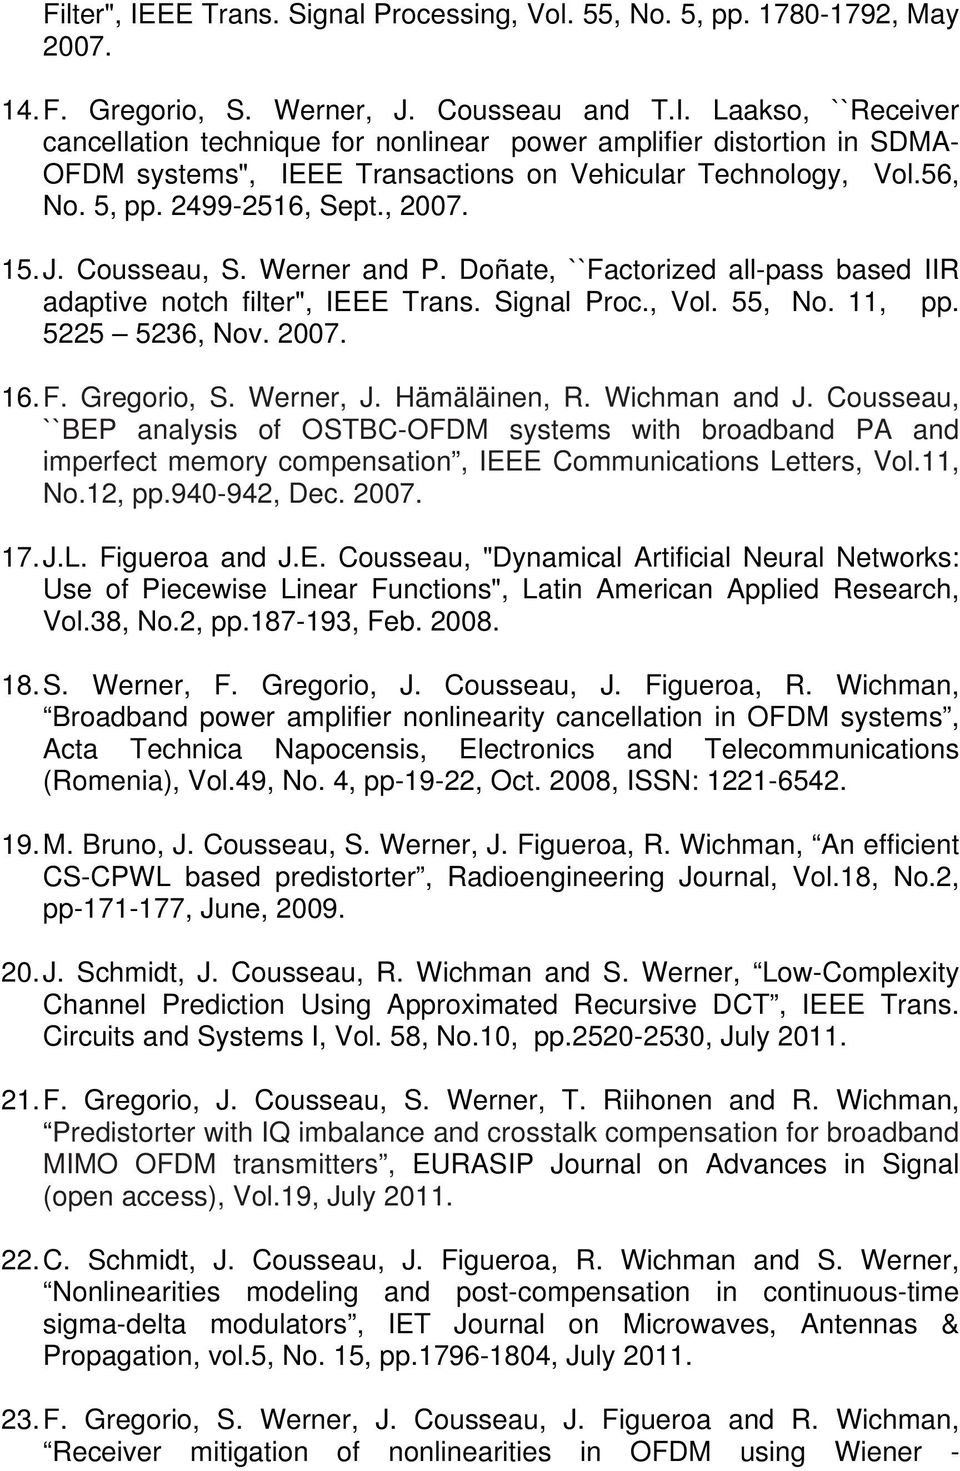 2007. 16. F. Gregorio, S. Werner, J. Hämäläinen, R. Wichman and J. Cousseau, ``BEP analysis of OSTBC-OFDM systems with broadband PA and imperfect memory compensation, IEEE Communications Letters, Vol.